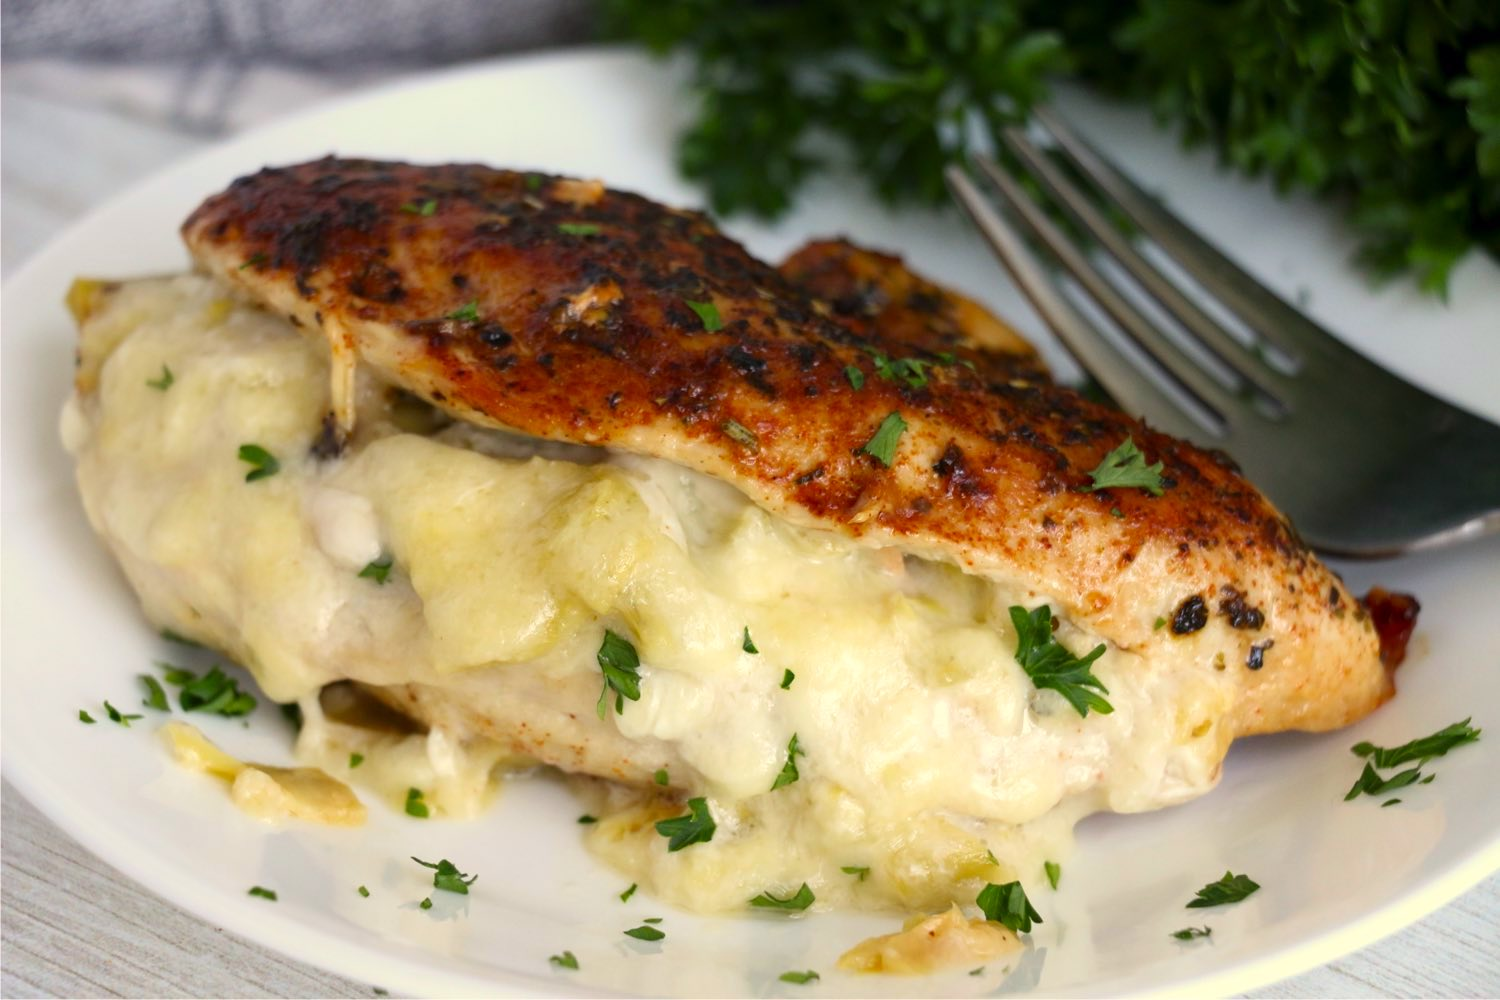 Chicken breast stuffed with a cheesy artichoke filling